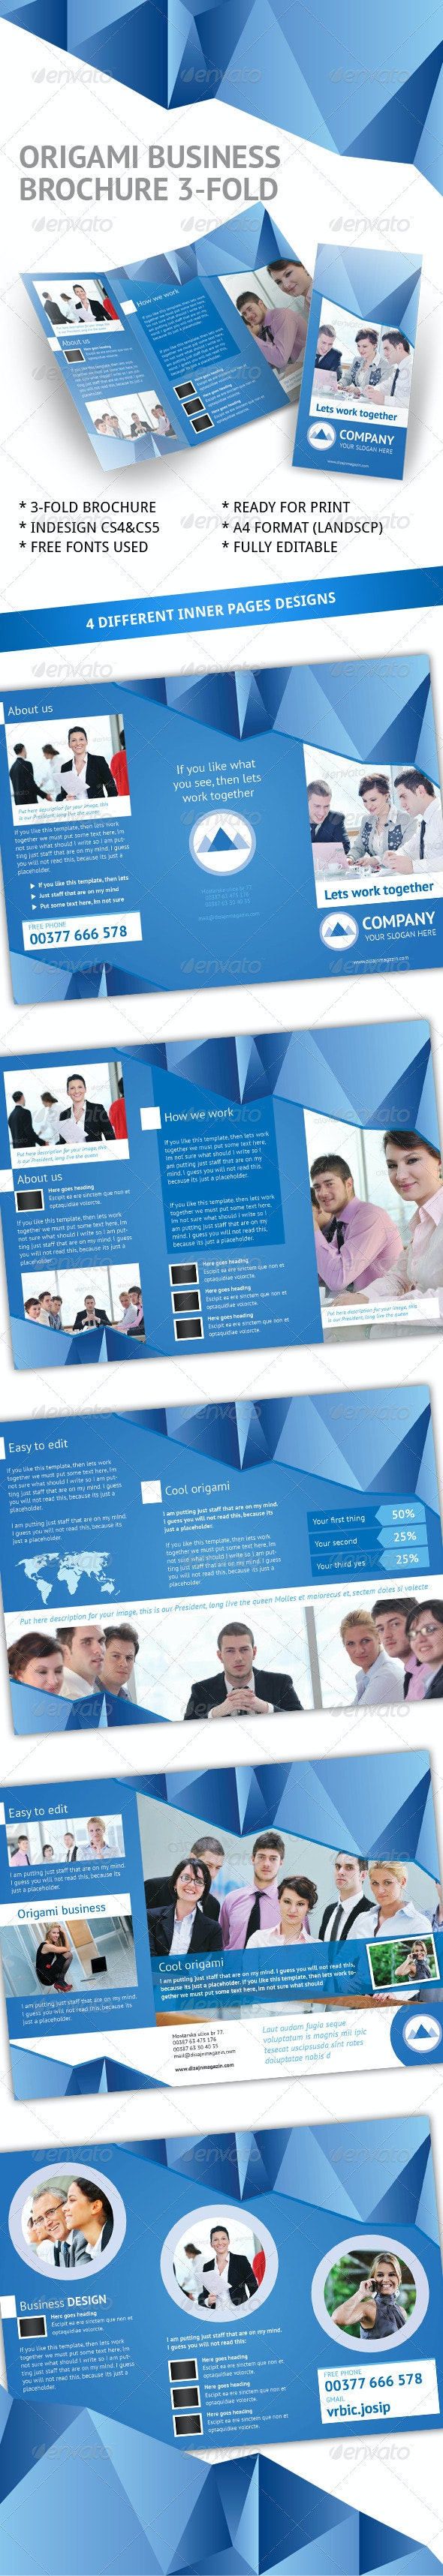 Business Origami 3-fold Brochure InDesign Template - Corporate Brochures